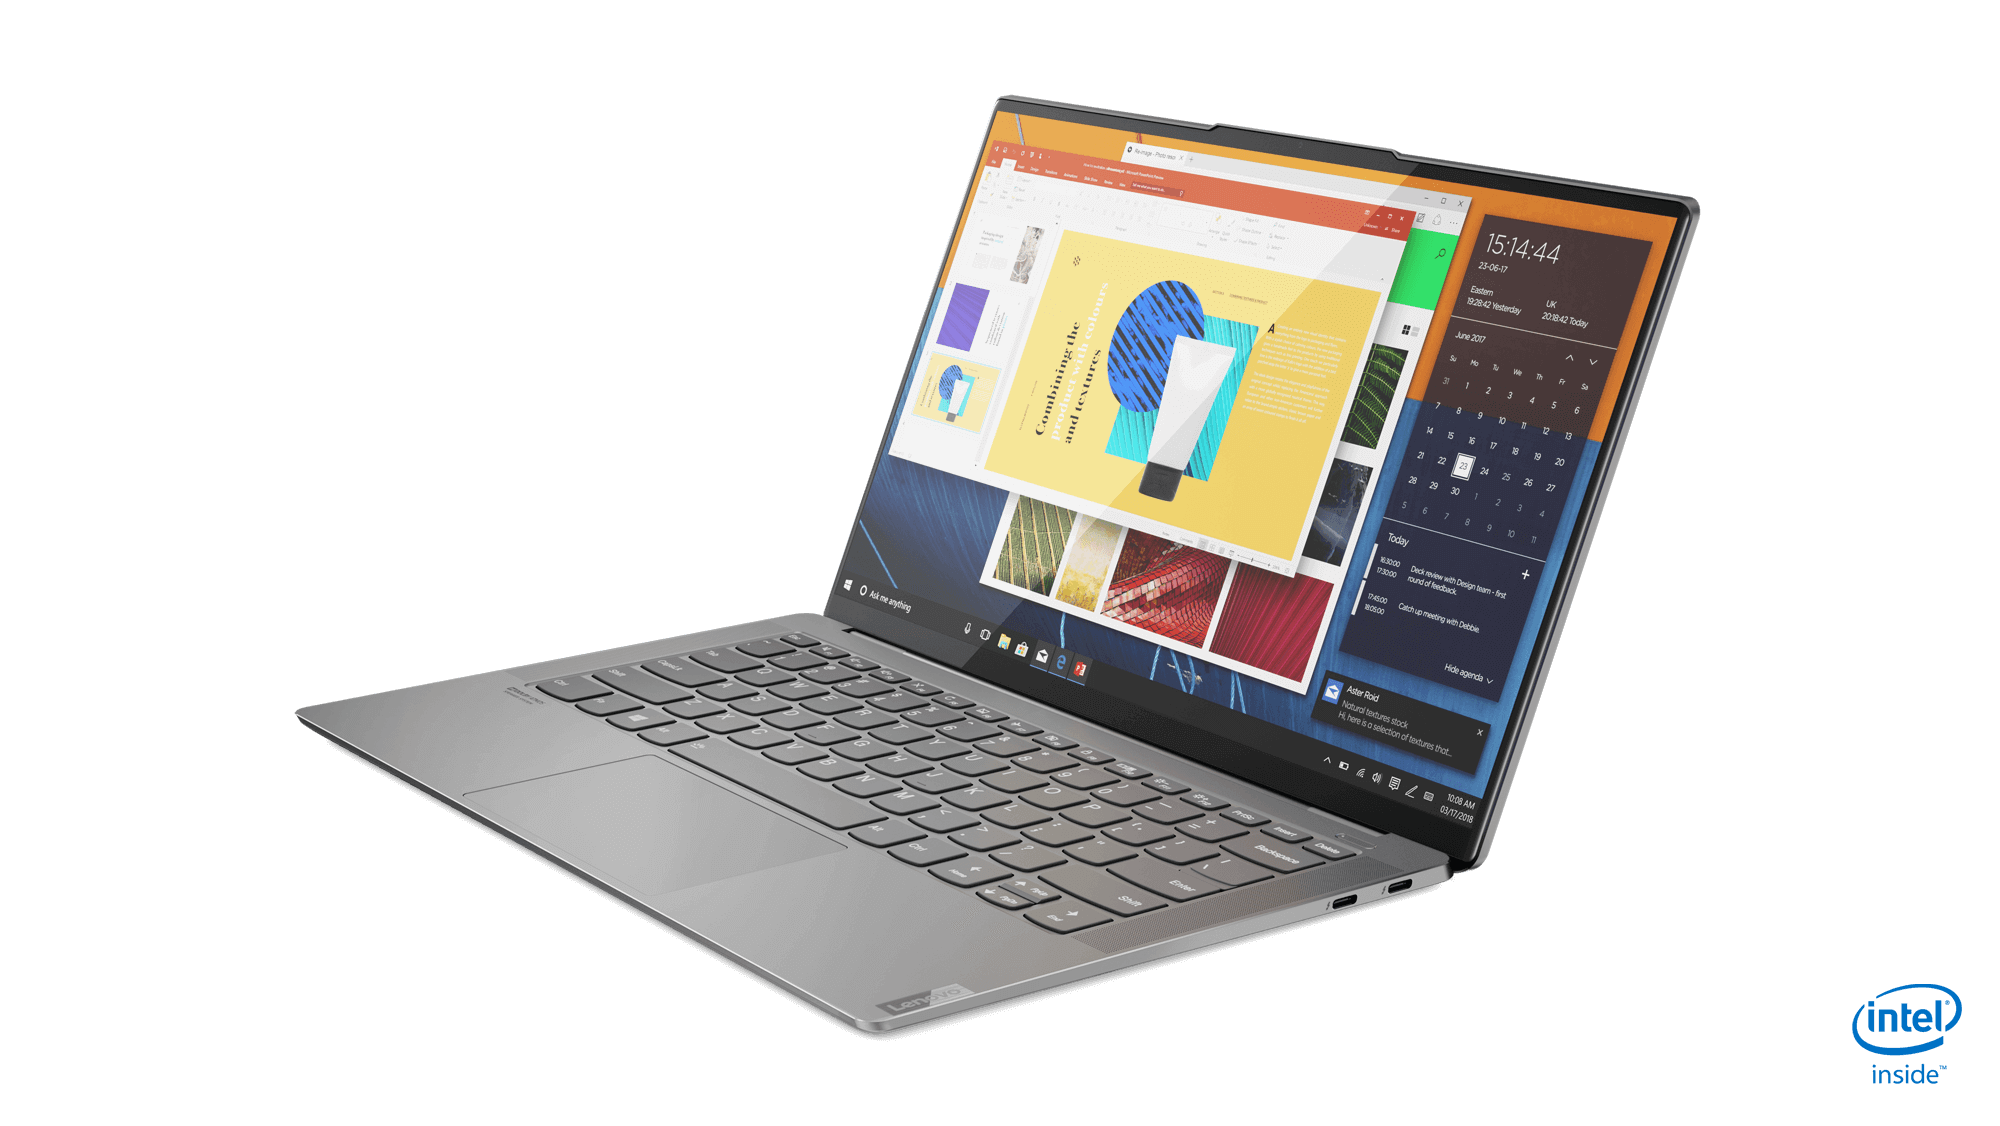 Lenovo unveils all-new Yoga series lineup at CES 2019 - TechSpot